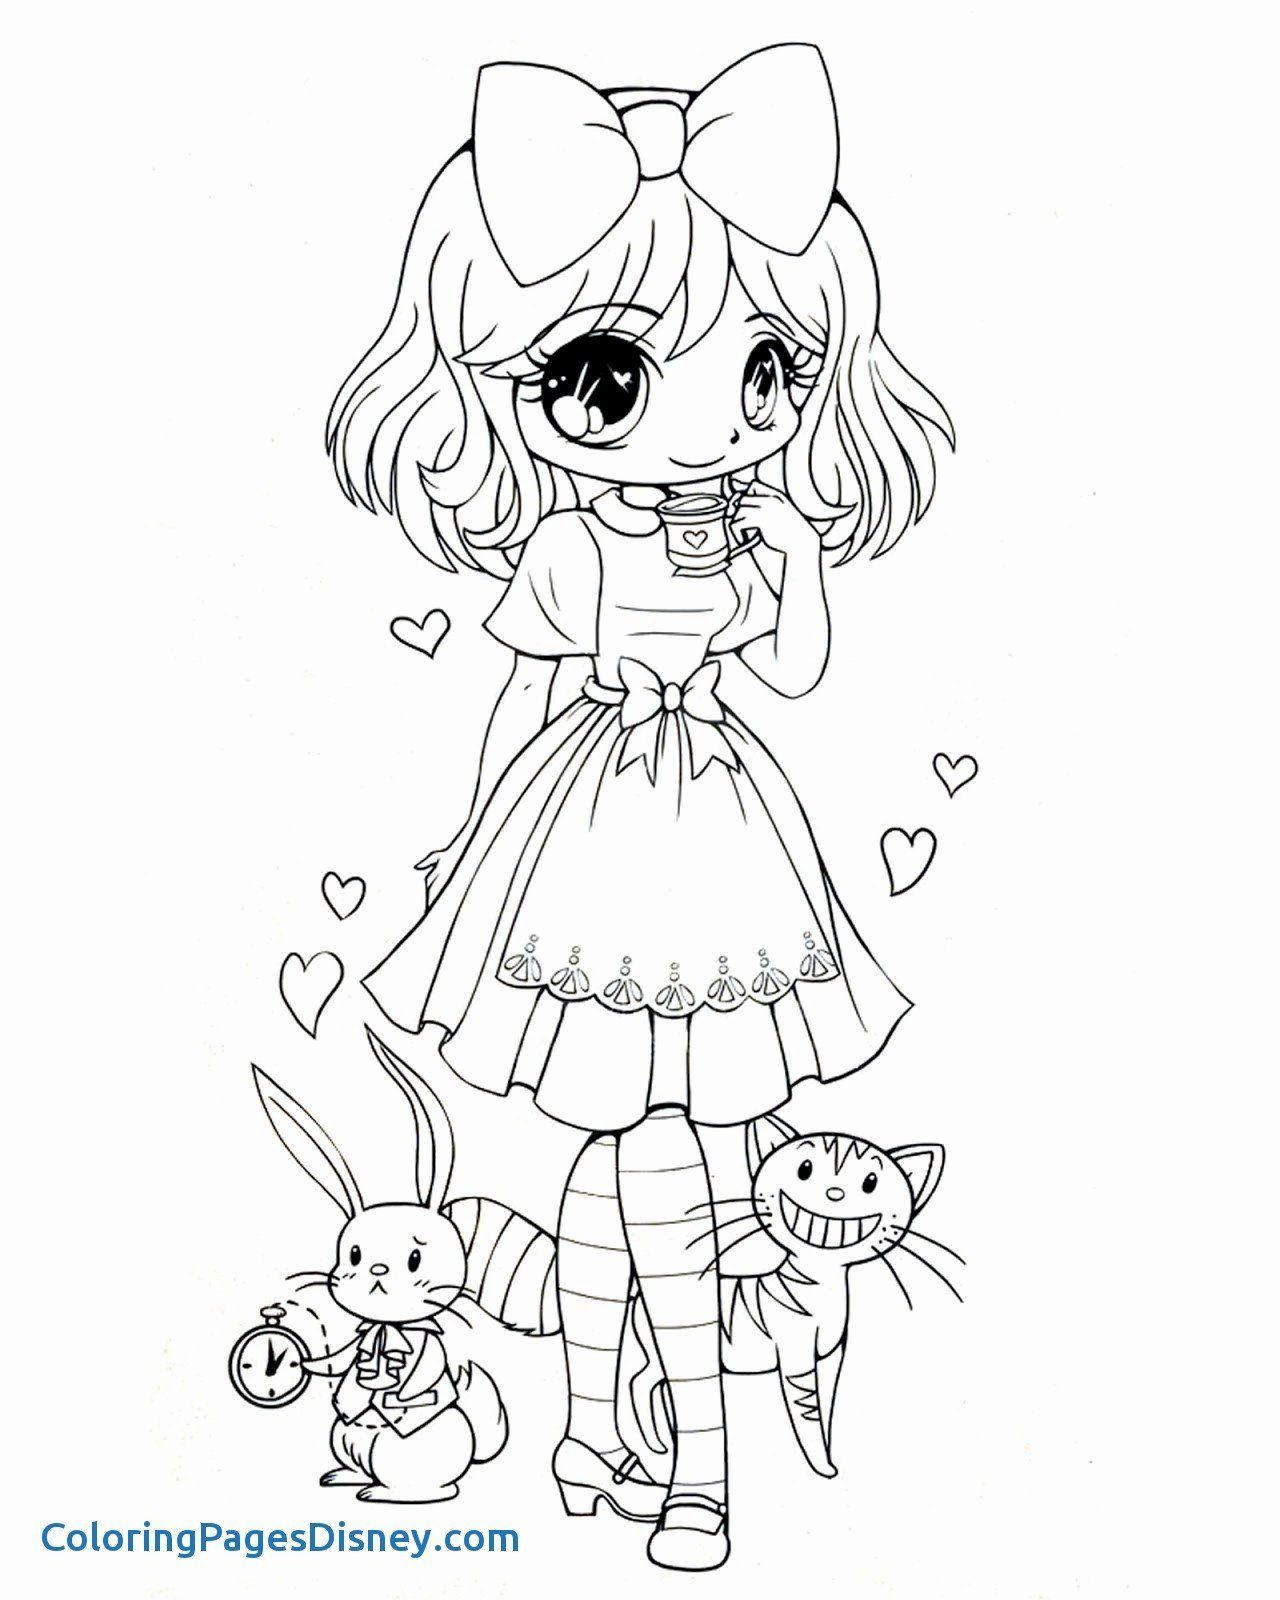 Alice In Wonderland Coloring Page Luxury Coloring Pages